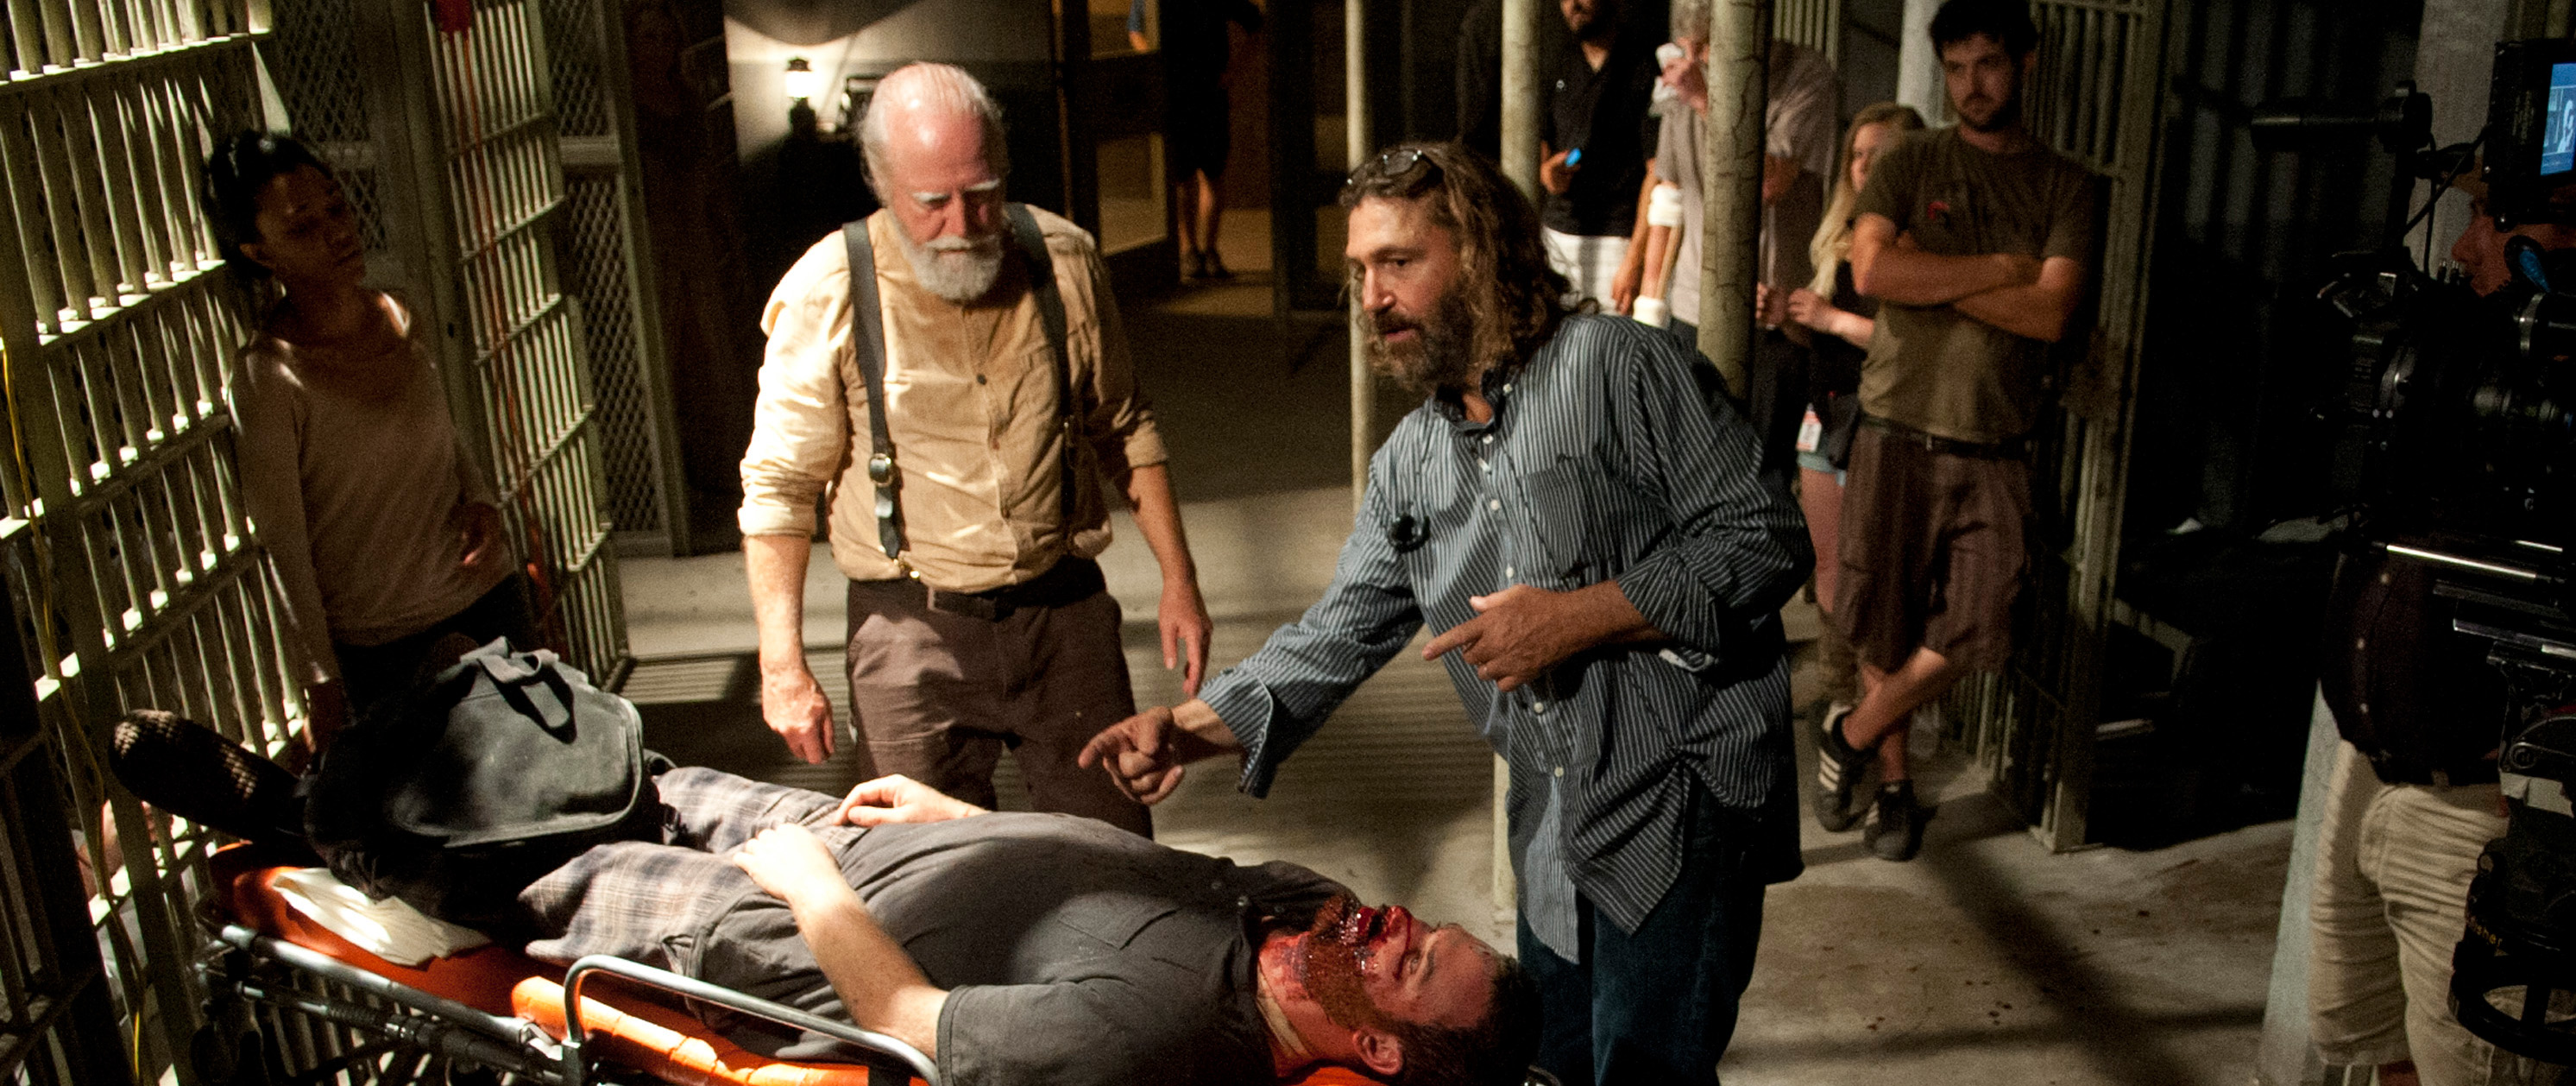 Bastidores da 4ª temporada de The Walking Dead: Episódio S04E05 -